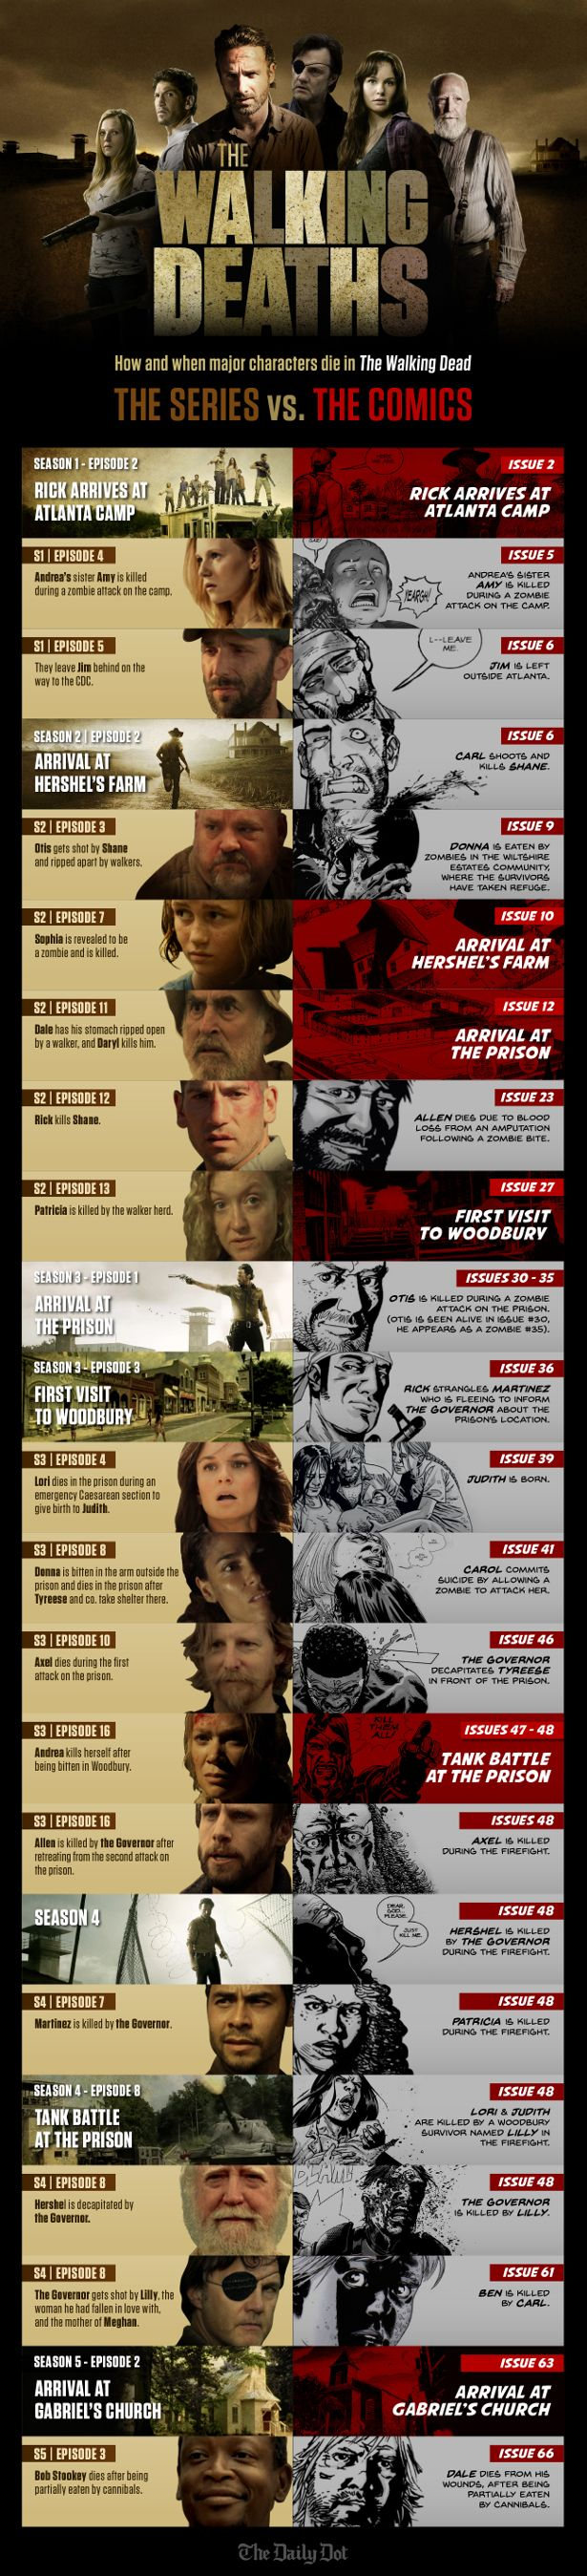 The Walking Dead Infographic: The Series vs. The Comics -- How and when major characters die...